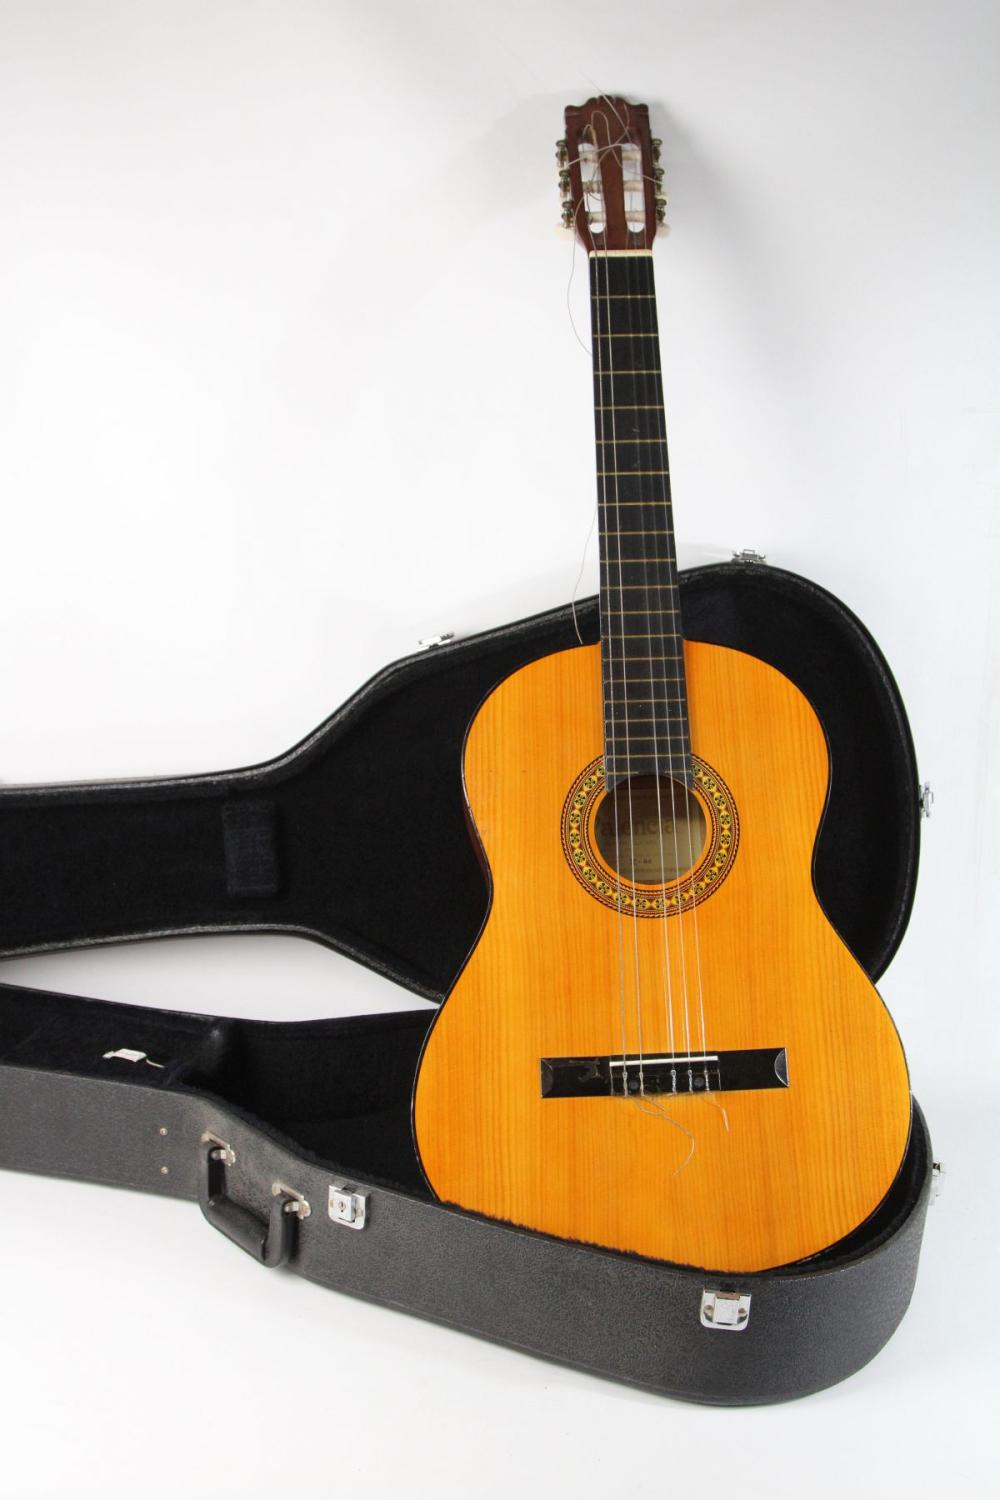 Valencia Accoustic Guitar In Road Case (L: 100cm)